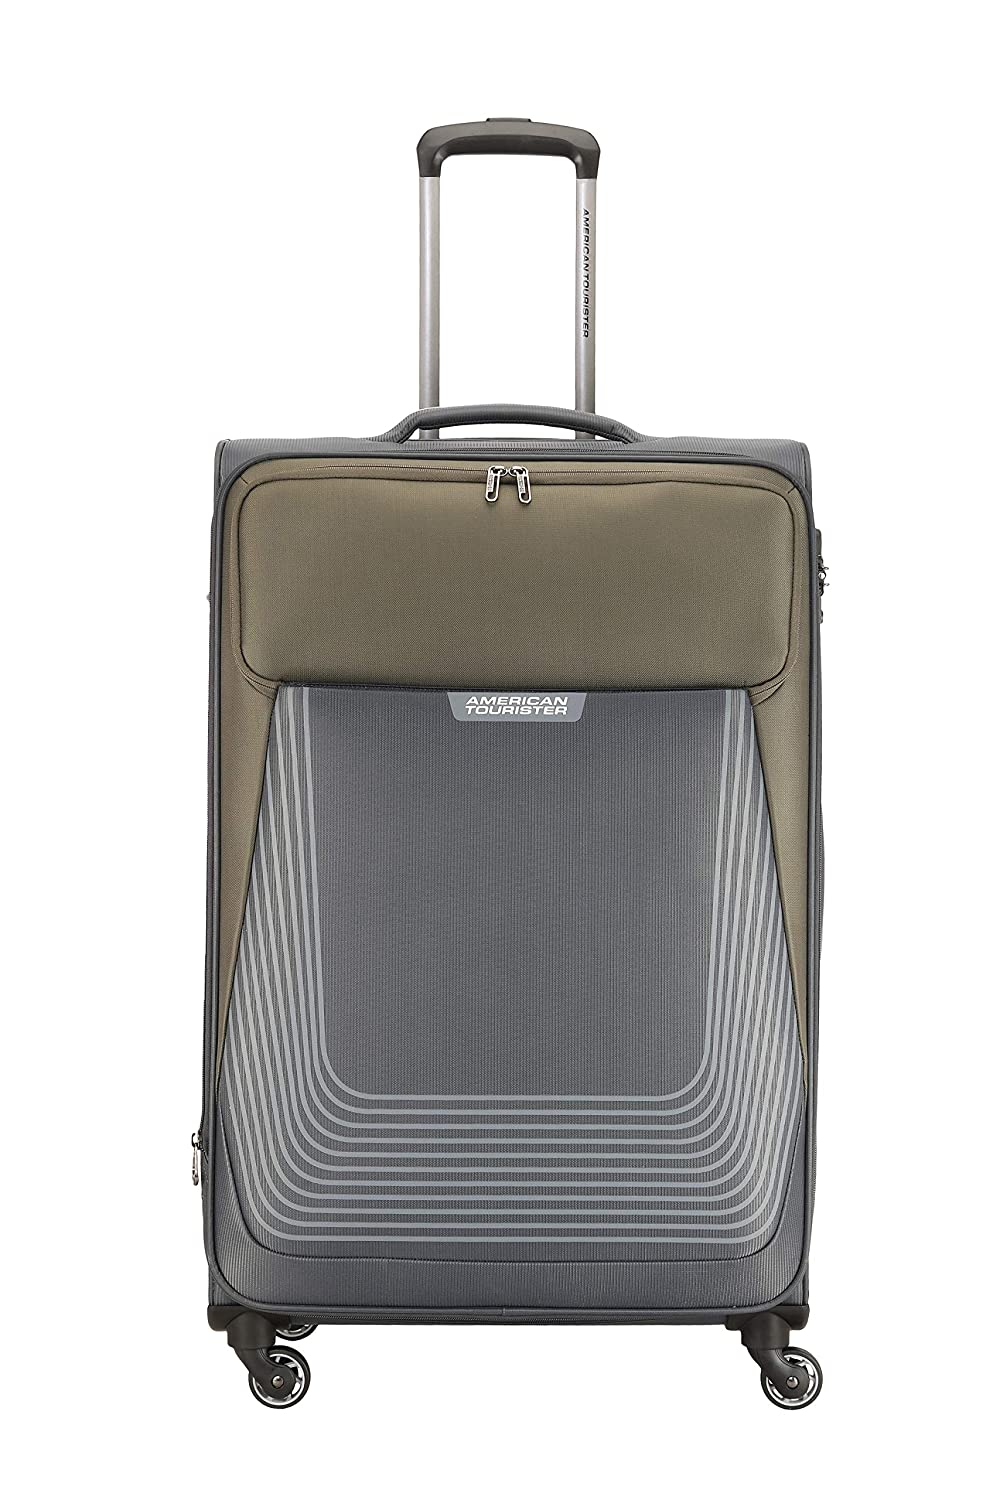 american-tourister-southside-polyester-70-cms-greyolive-softsided-check-in-luggage